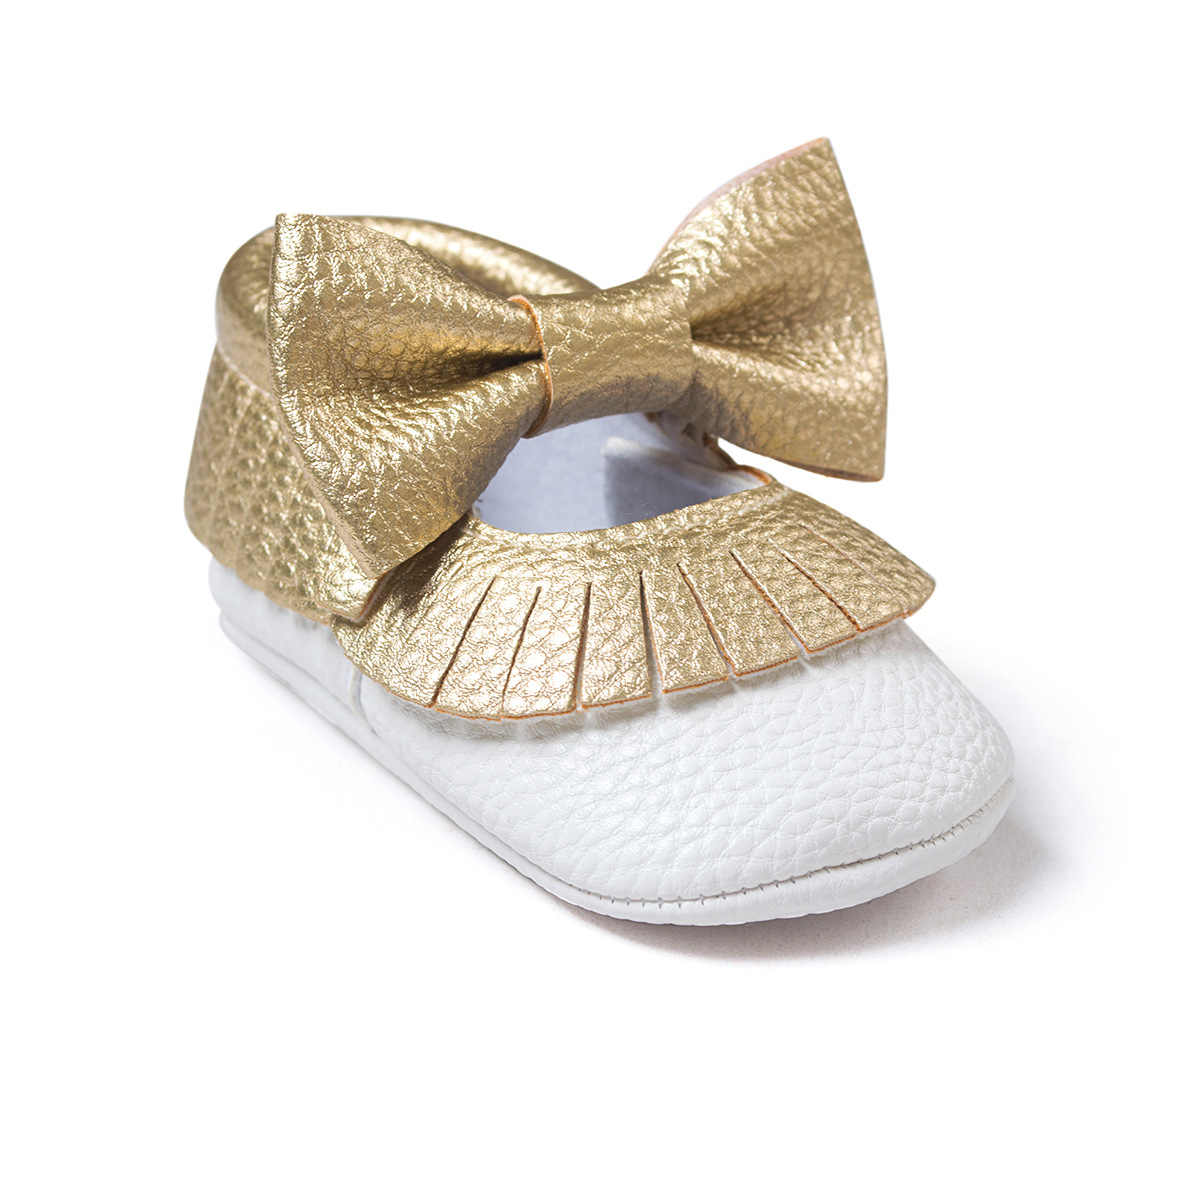 046097bde3 Newborn Black Gold Tassel Bowknot Baby Shoes PU Leather Baby Toddler Girl  Shoes Baby Infant Moccasins Shoes First Walker